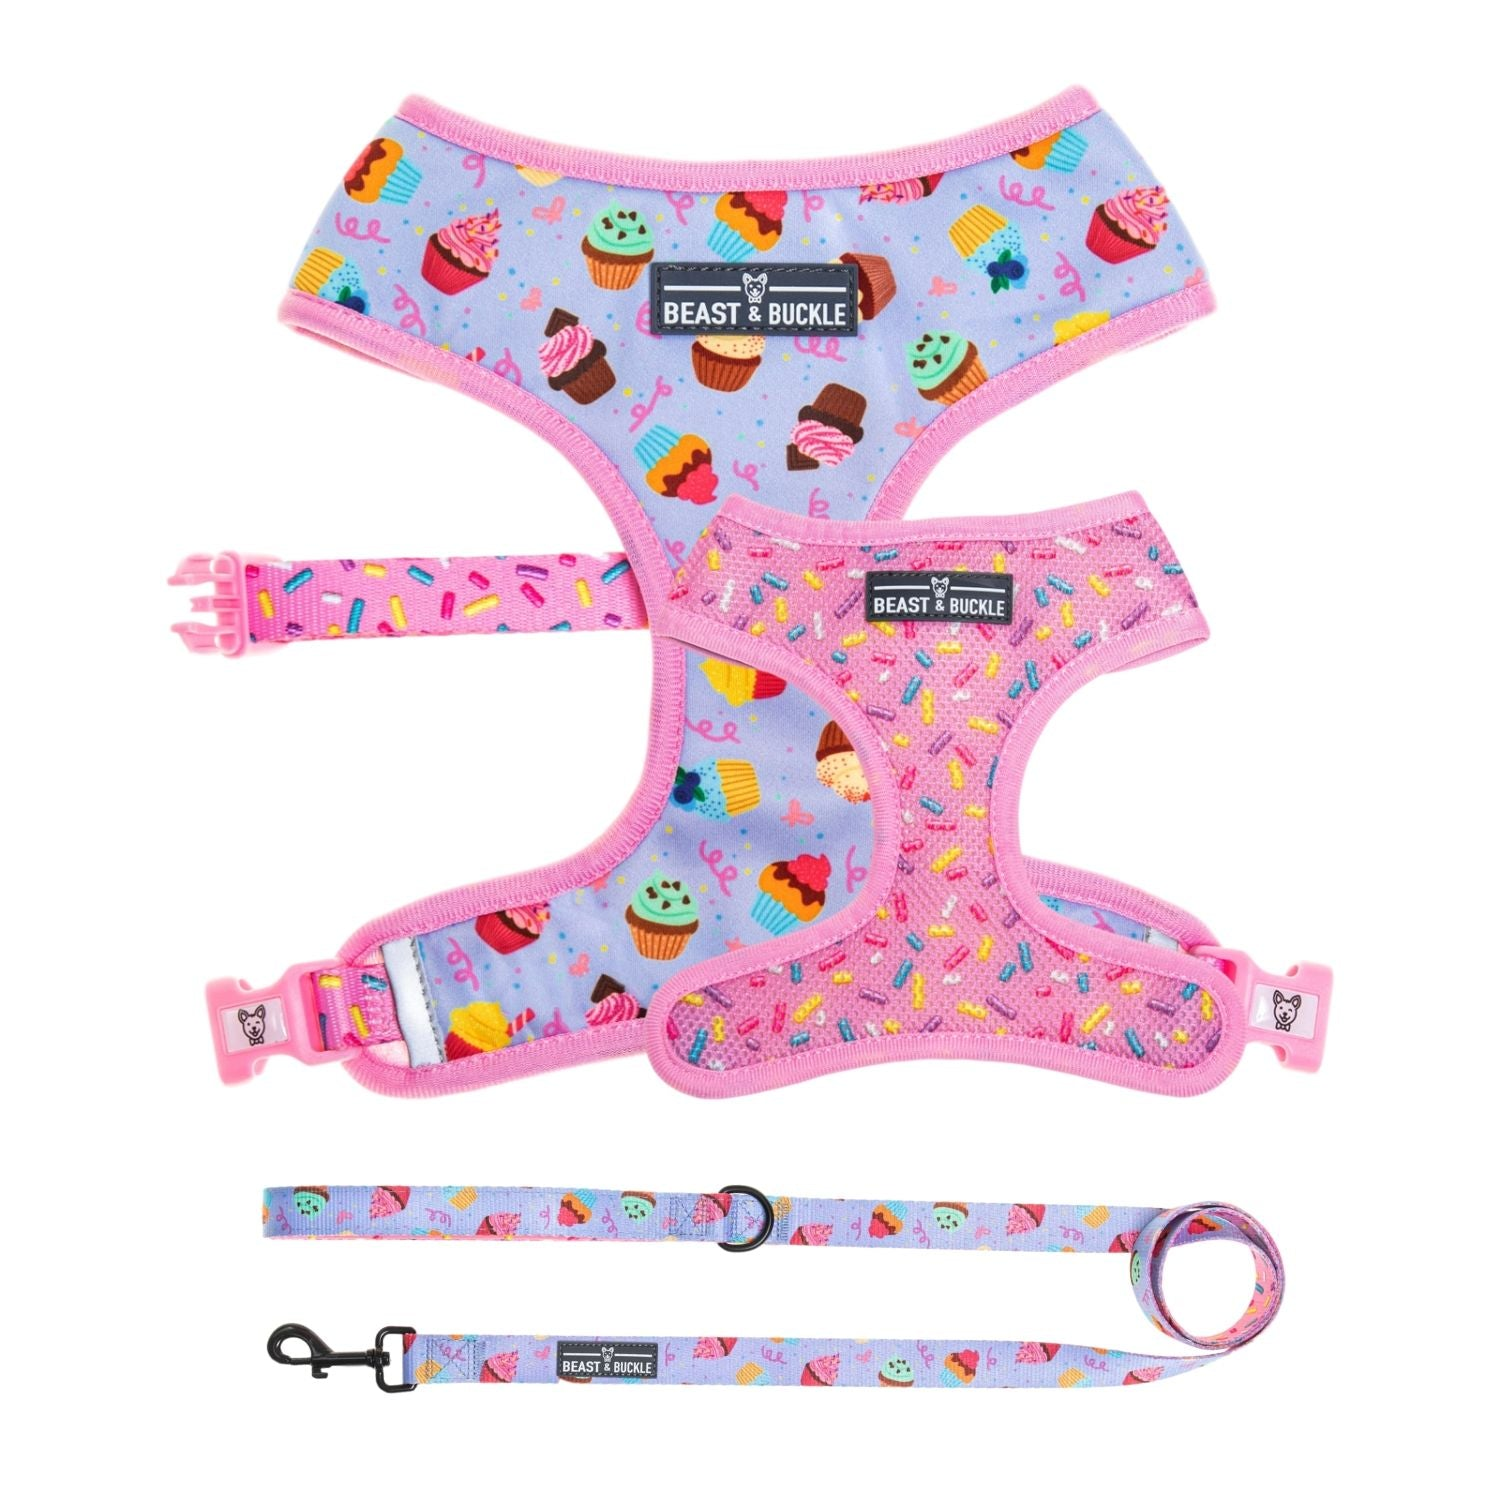 Cupcake Harness and Leash Set